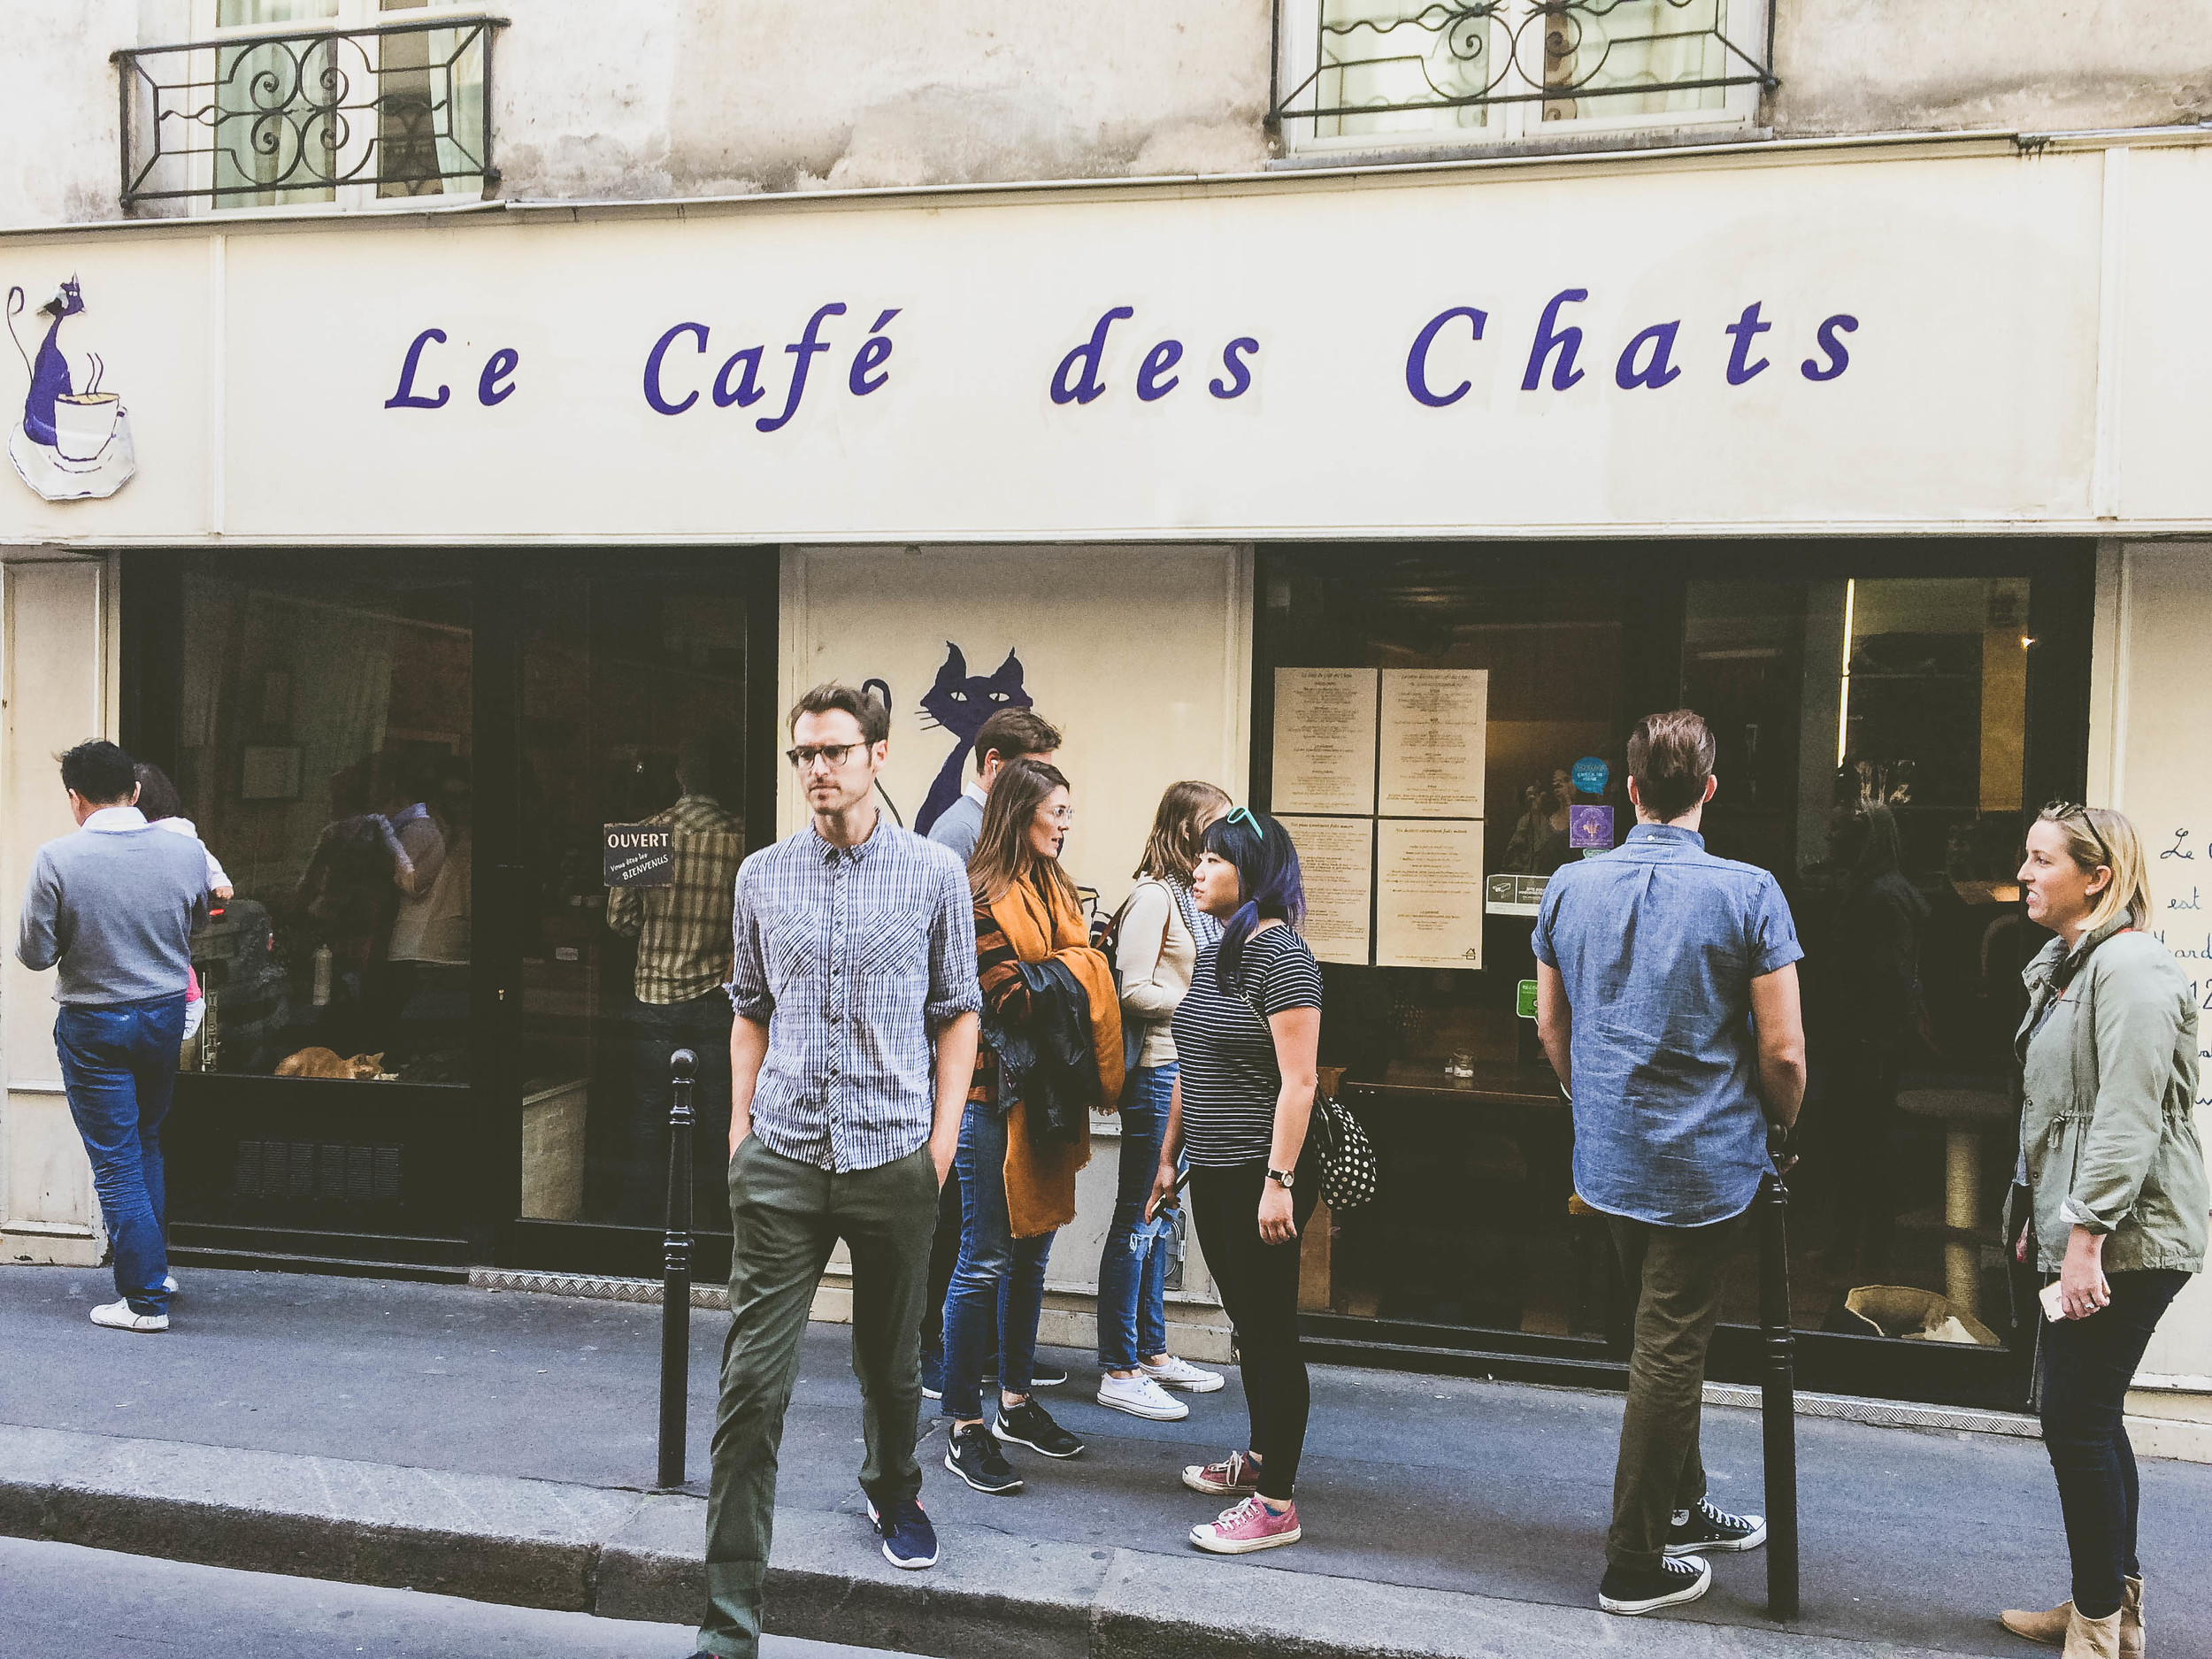 We stumbled upon Le Café des Chats and did a little window-peeking.